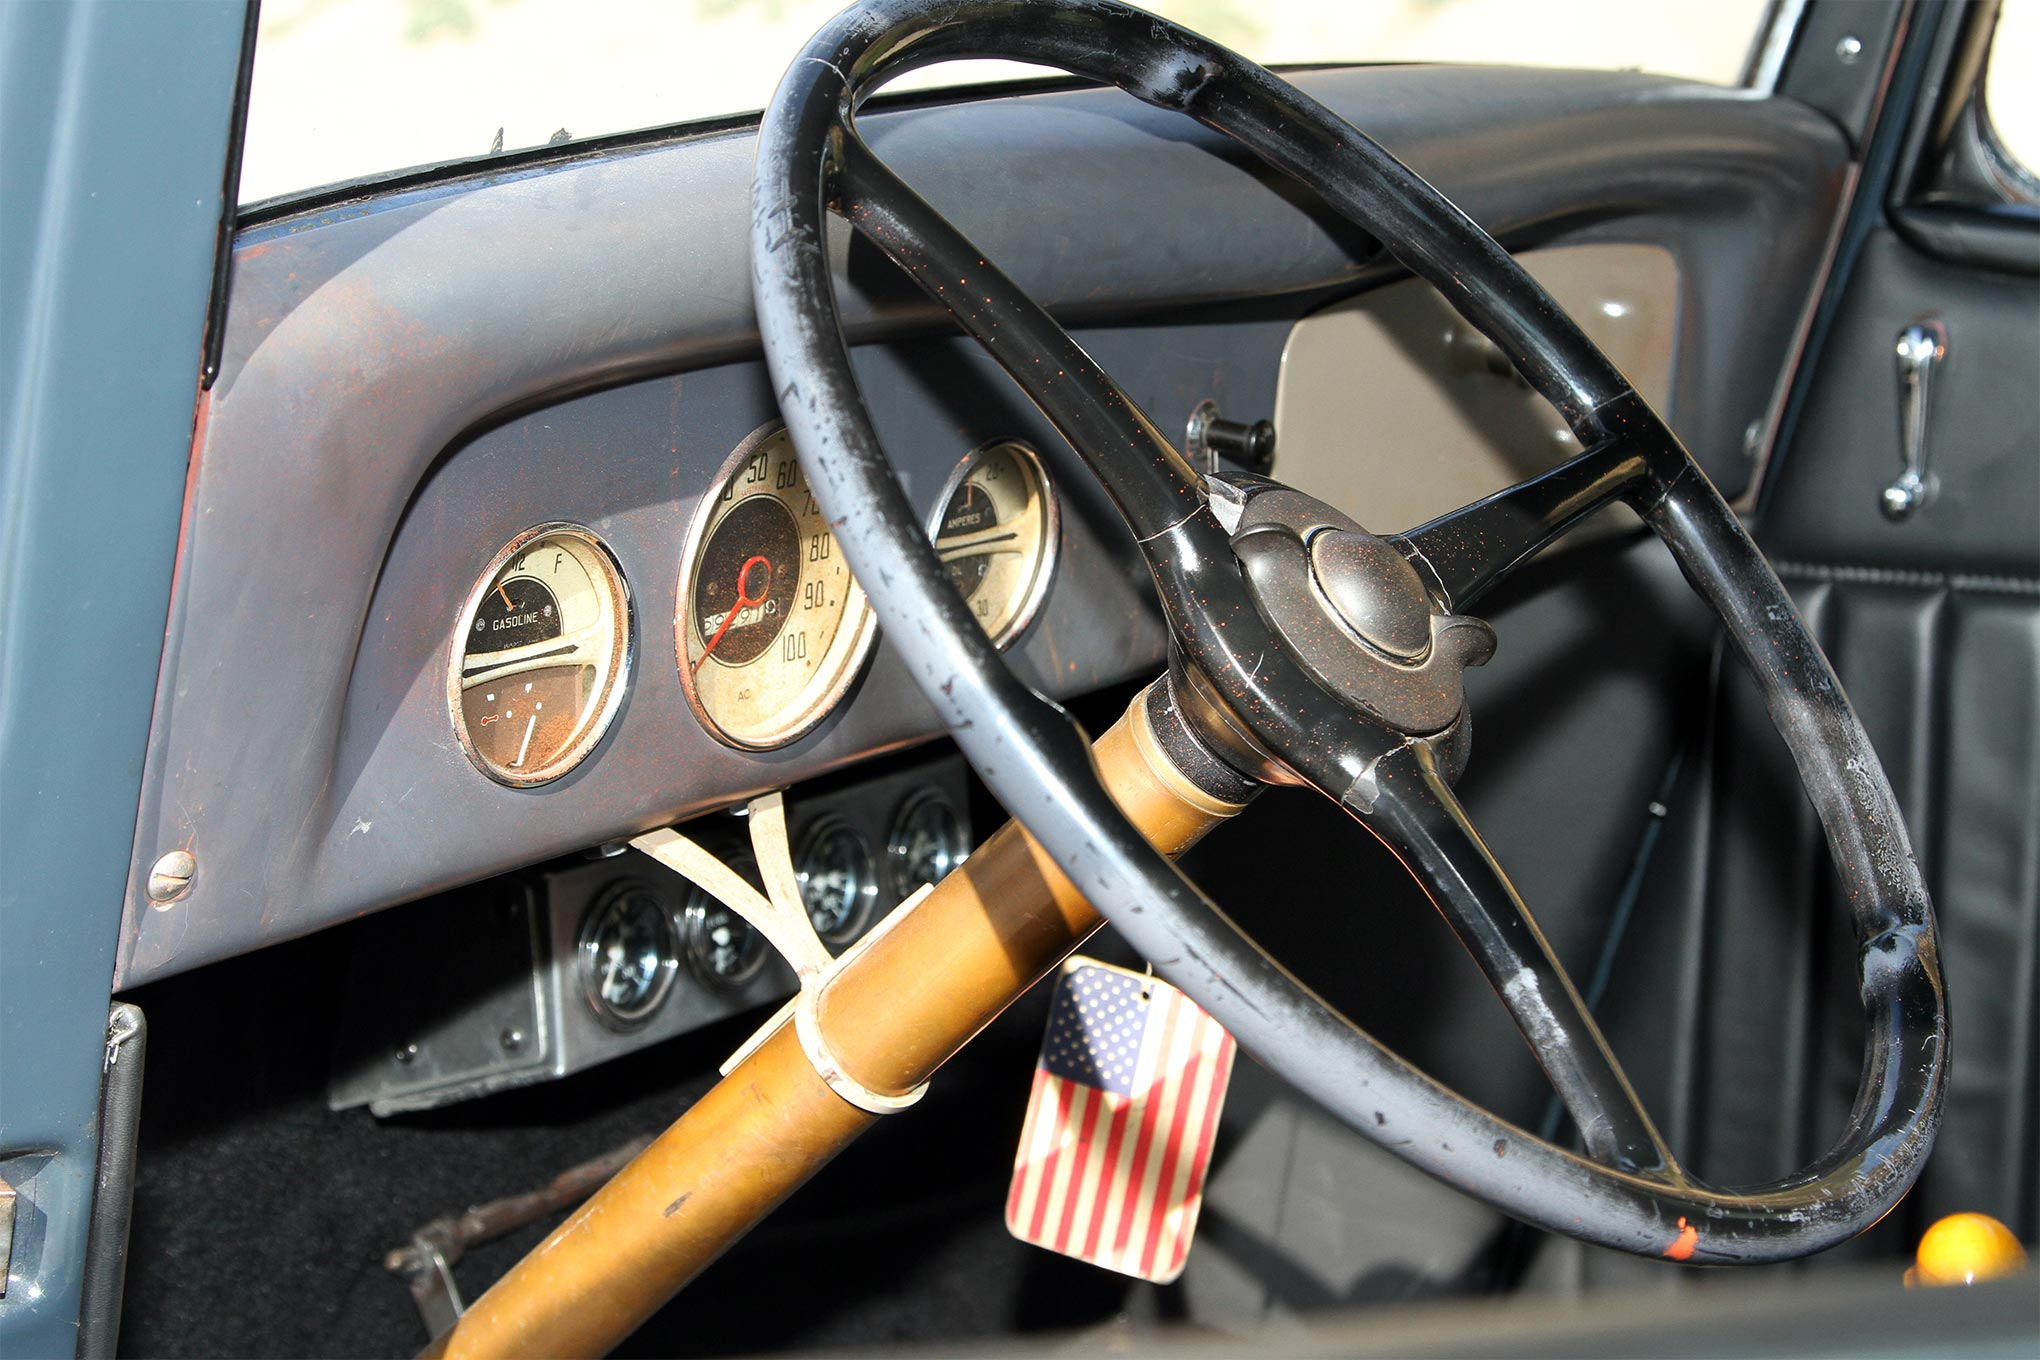 The dash for the hot rod is from a '36 Chevy school bus. The gauges are old AC-brand monitors that Aaron got from a dry-lakes racer. Under the dash, Aaron fabricated a gauge box to house four Stewart-Warner gauges. The box is tucked deep under the dash so it's not that visible from the outside. An original '34 Ford steering wheel and column were also used in the coupe.